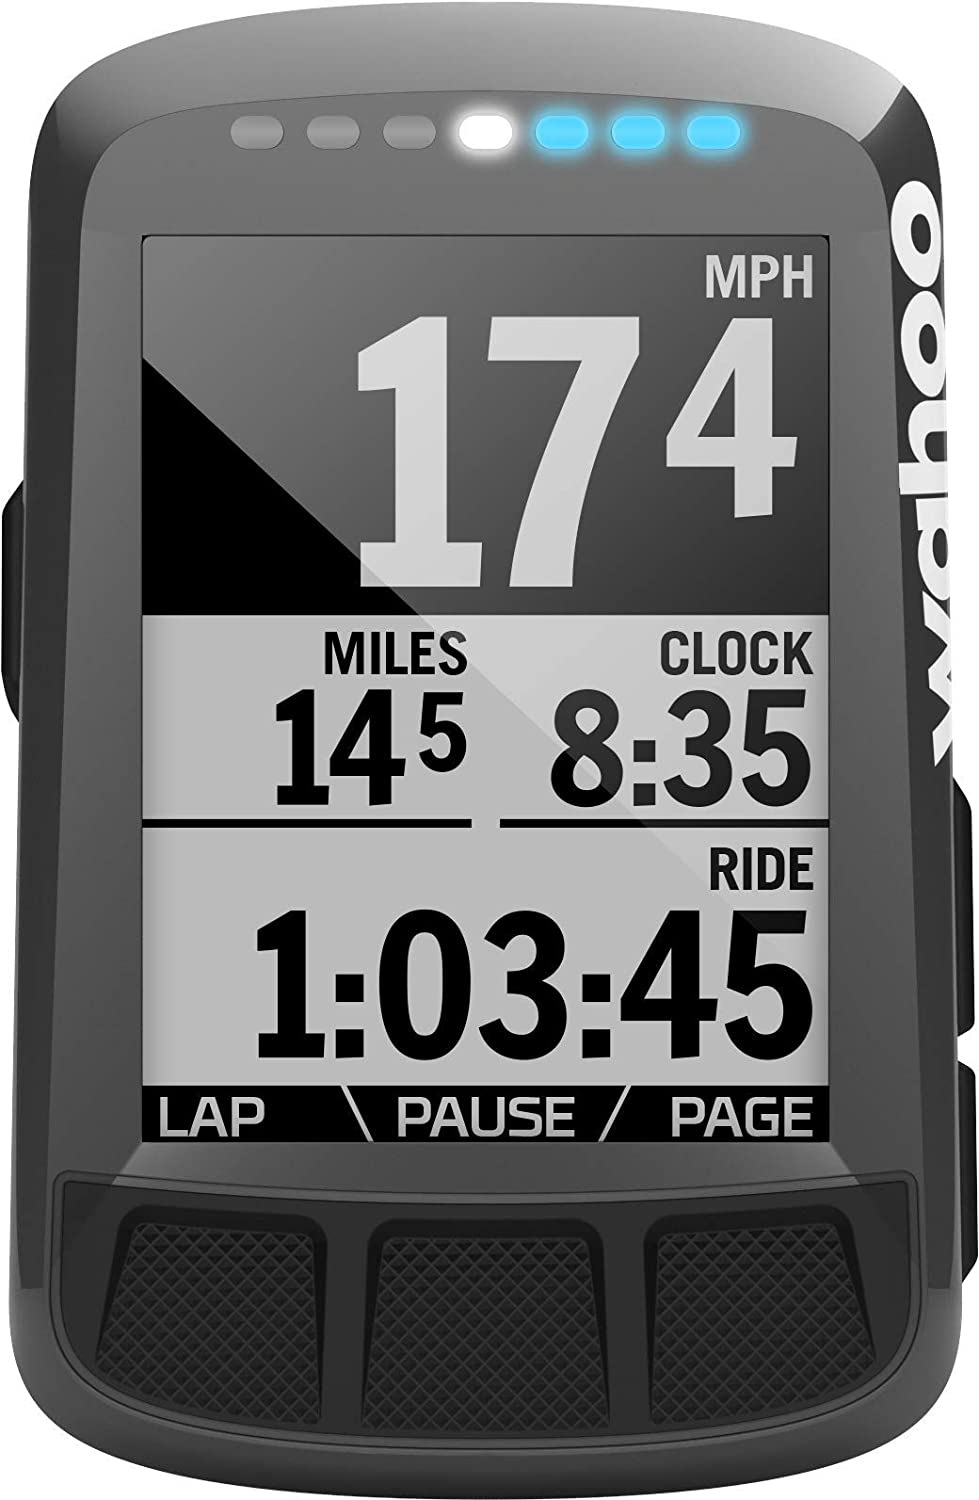 Best bike computer: Wahoo ELEMNT Bolt GPS Bike Computer